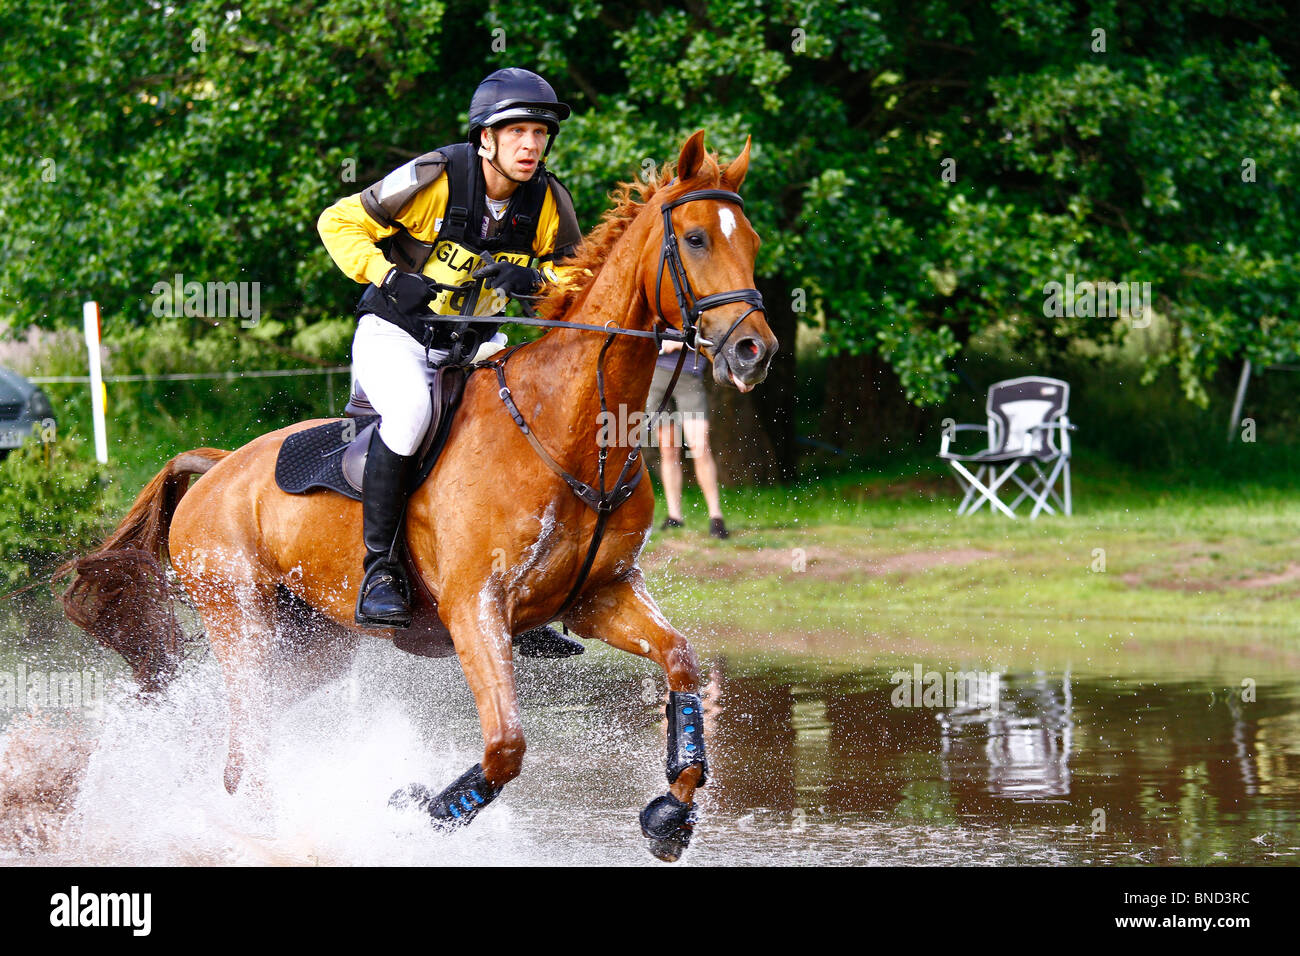 Eventing - Horse and rider galloping through water at Glanusk Horse Trials in Wales. - Stock Image